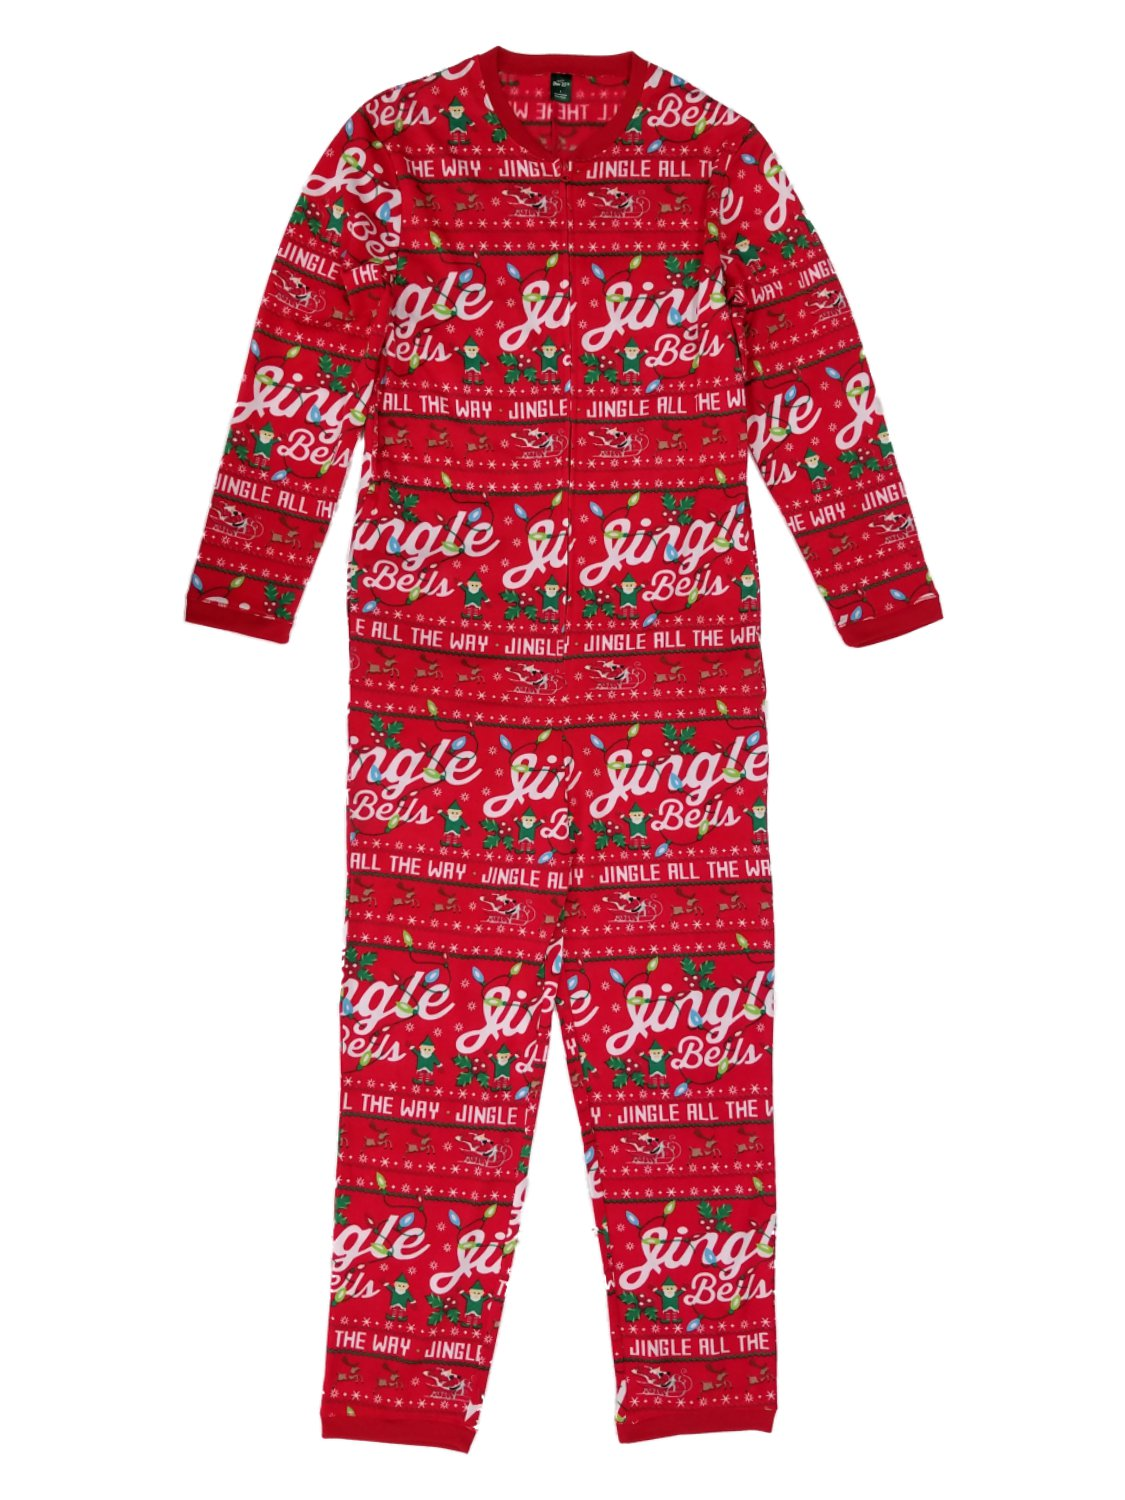 Mens Christmas Pajamas.Mens Jingle Bells Christmas Holiday Microfleece Union Suit Pajamas